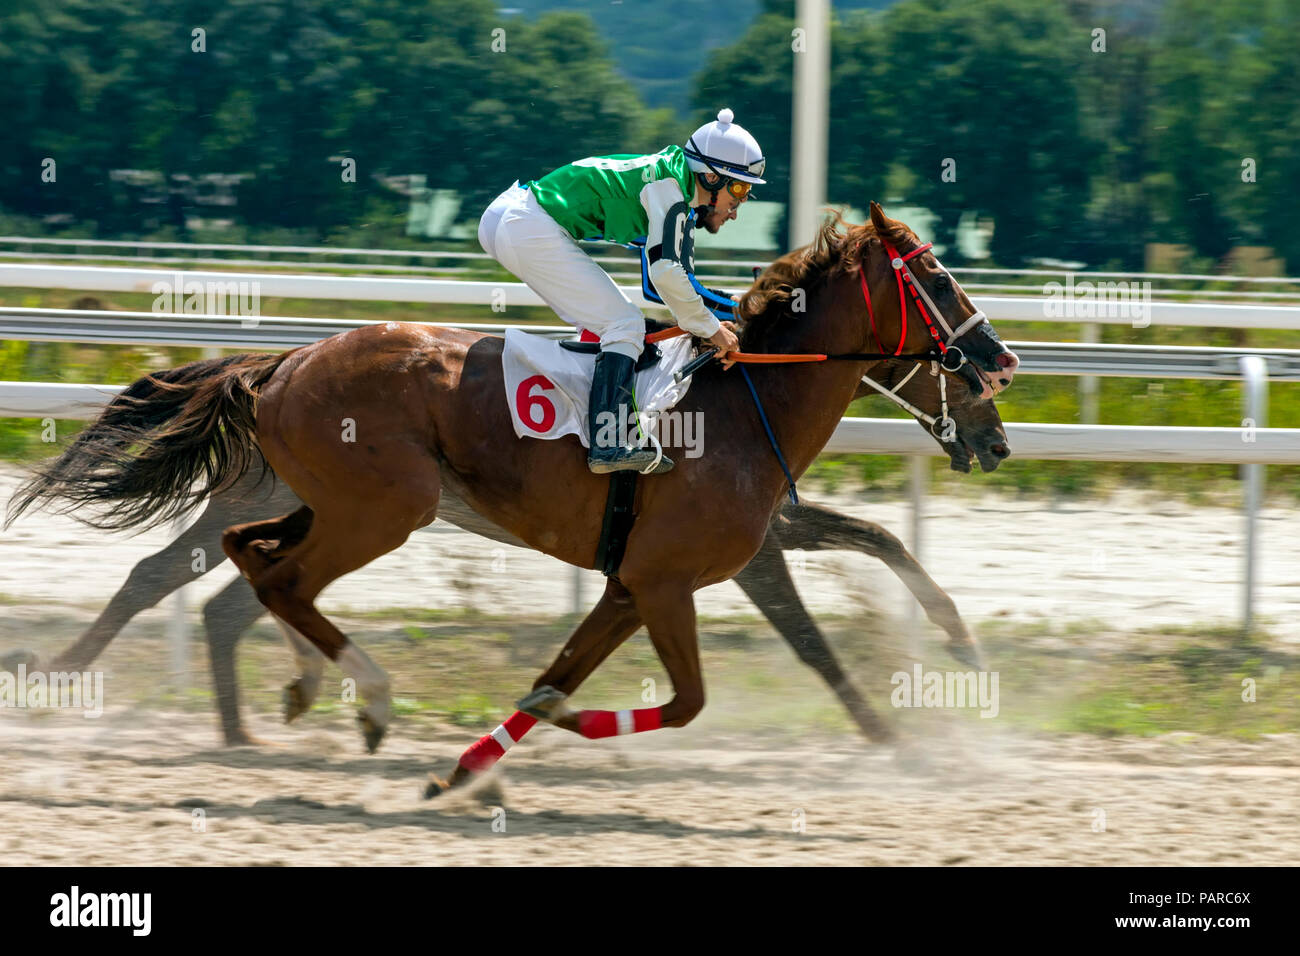 PYATIGORSK, RUSSIA - JULY 22, 2018:Horse racing for the prize of the Aragvi in Pyatigorsk,one of the largest and oldest racecourses in Russia. Stock Photo